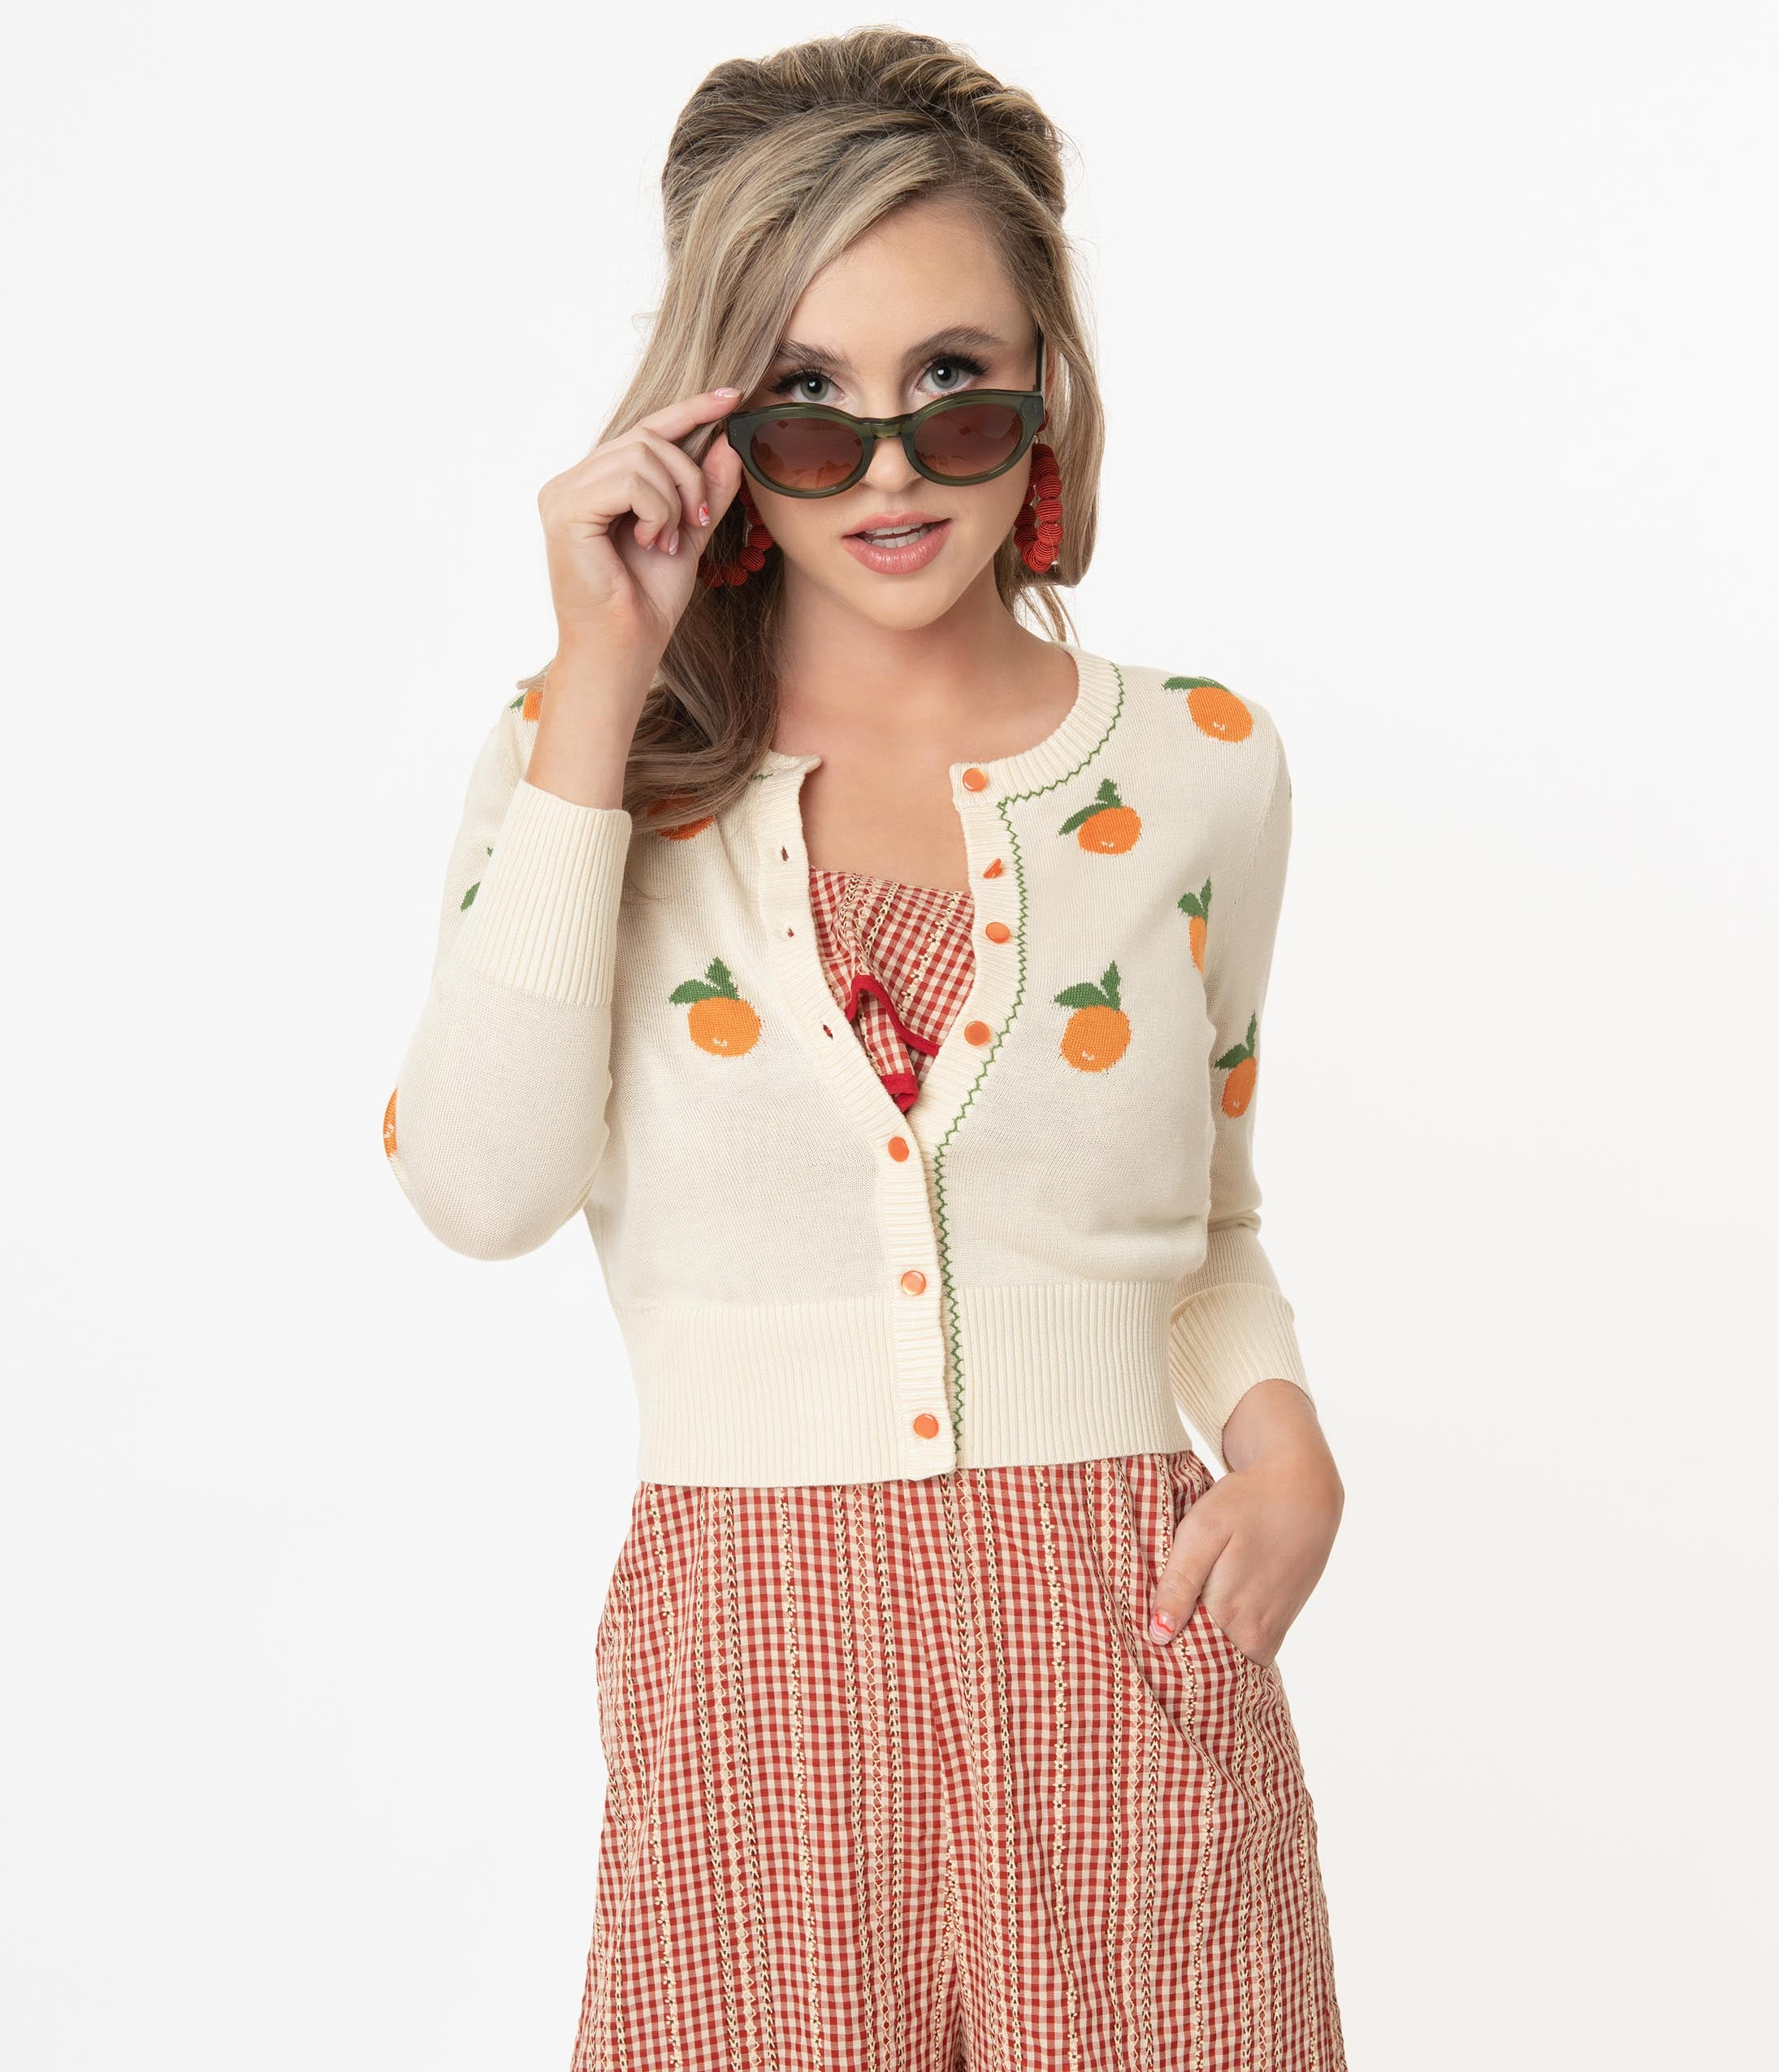 Vintage Sweaters & Cardigans: 1940s, 1950s, 1960s Voodoo Vixen Cream  Oranges Knit Cardigan $62.00 AT vintagedancer.com